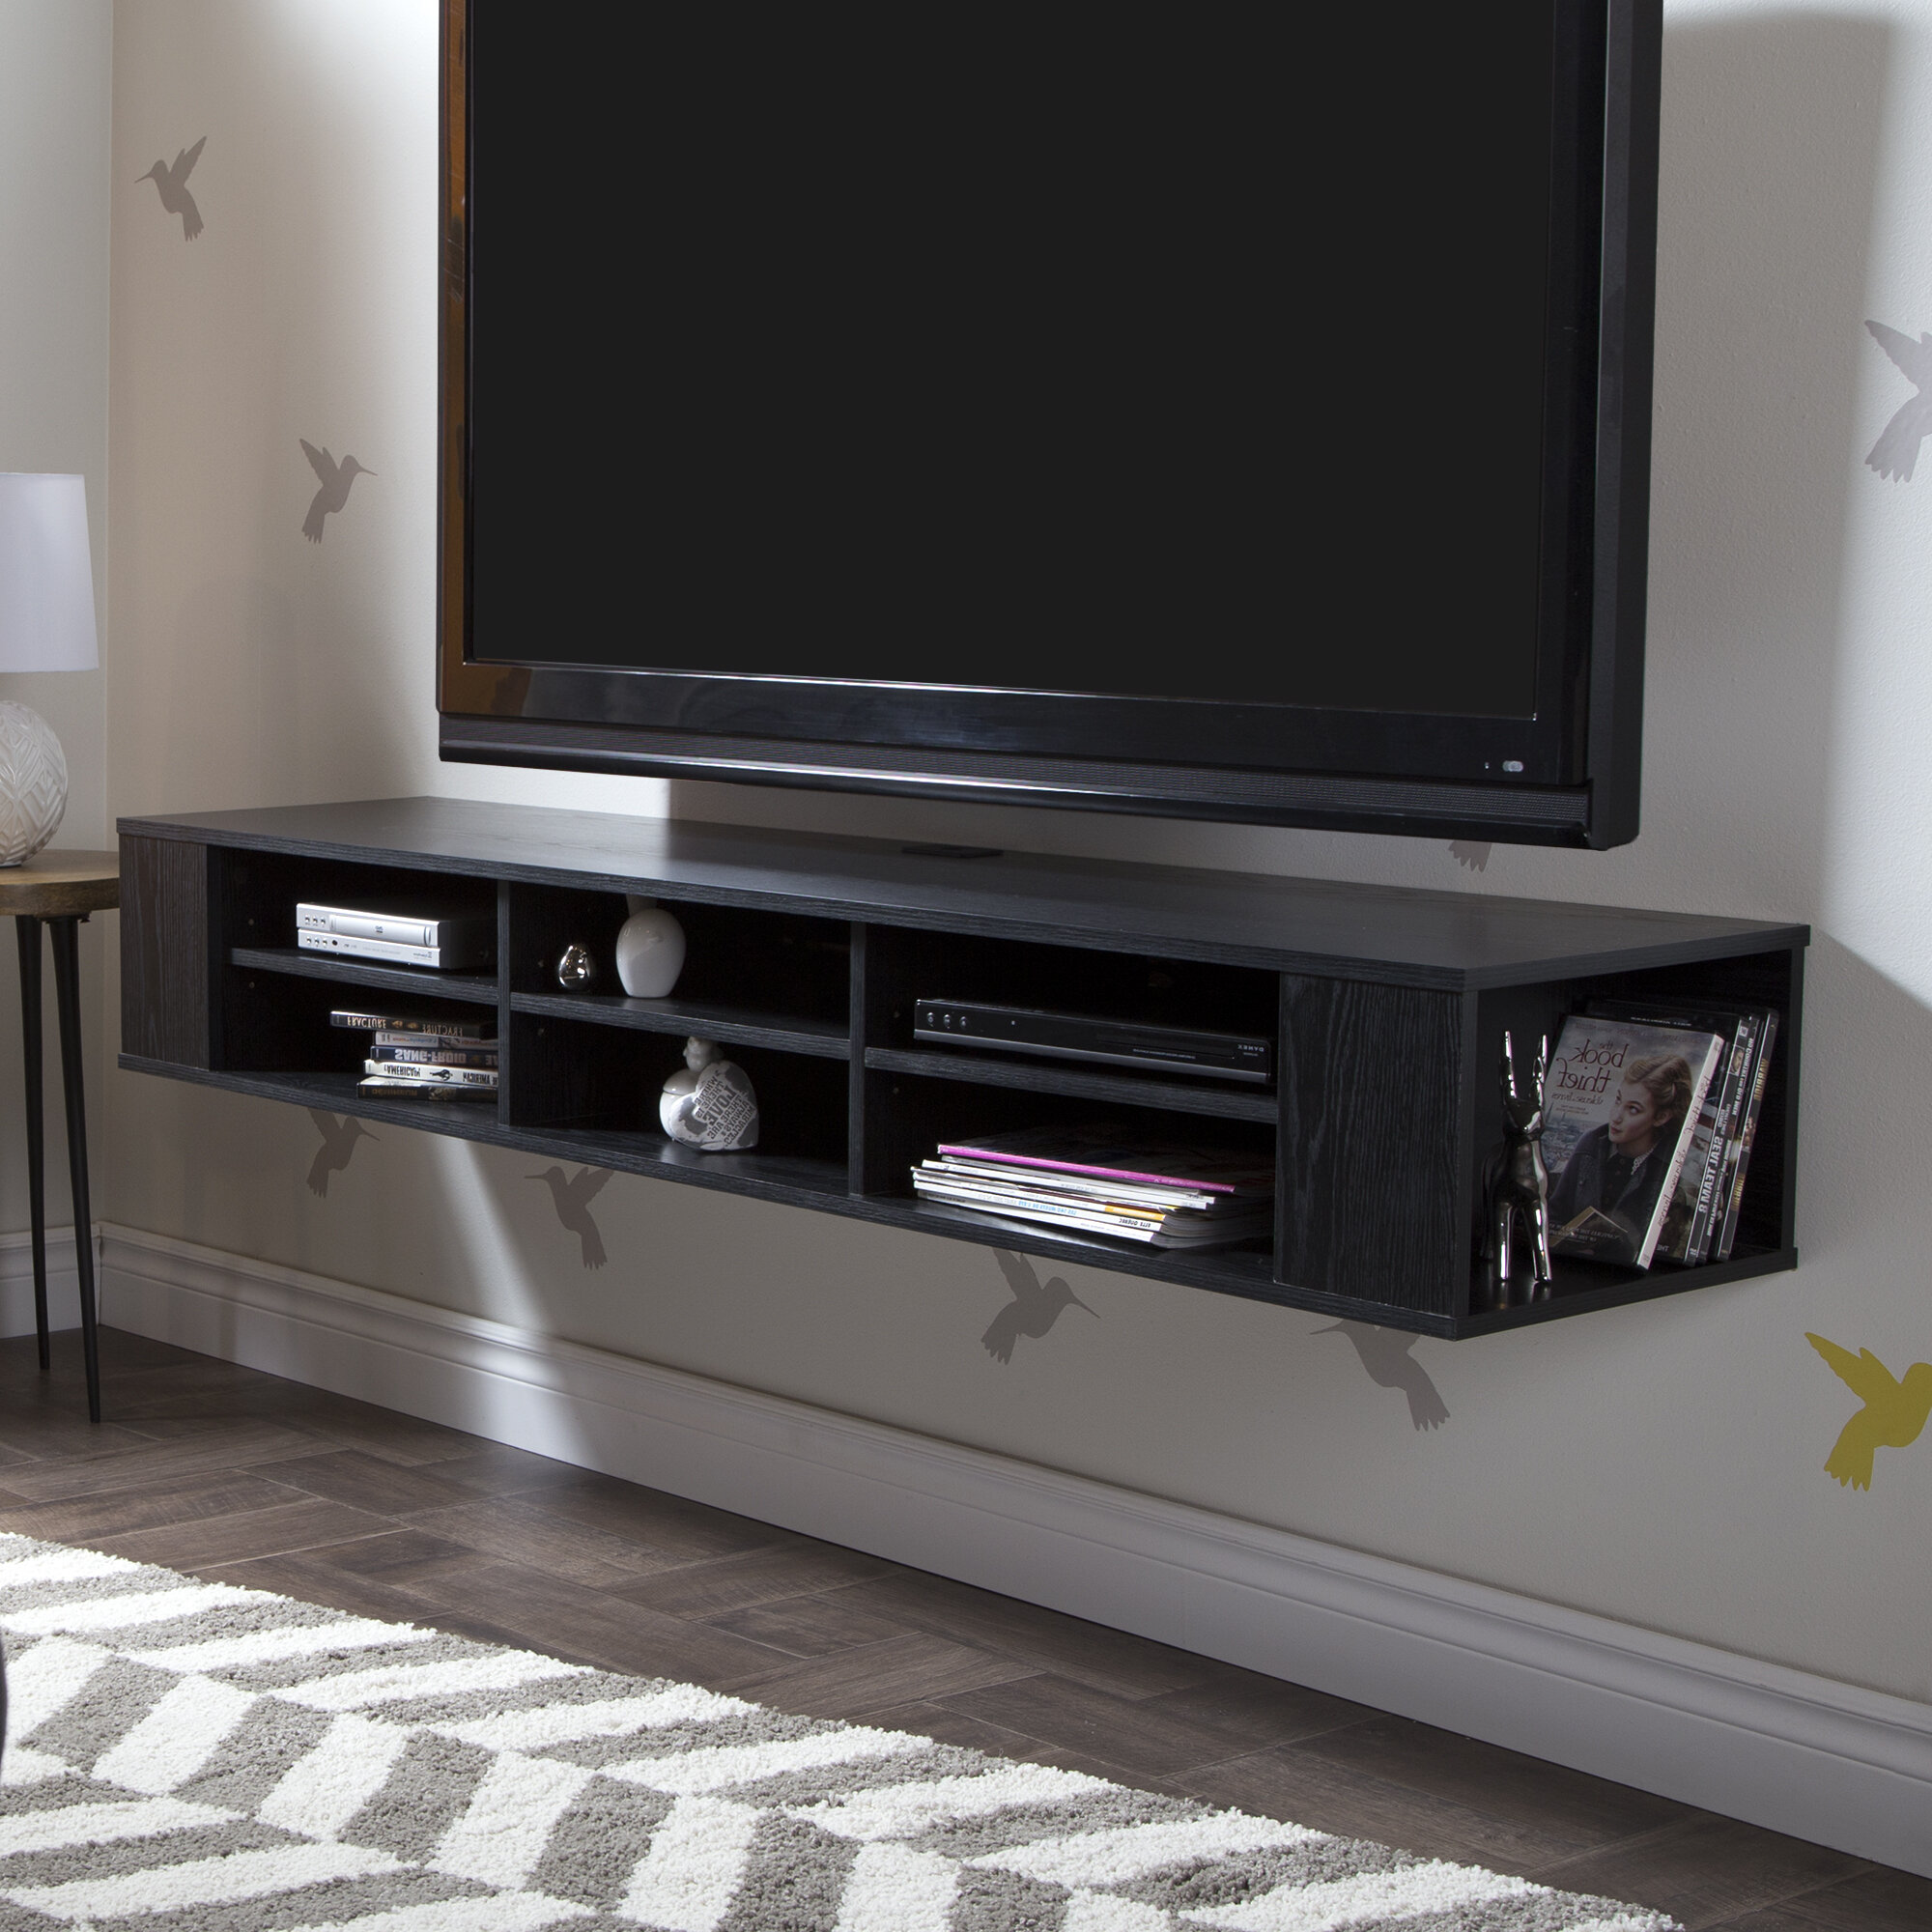 City Life Floating Mount Tv Stand